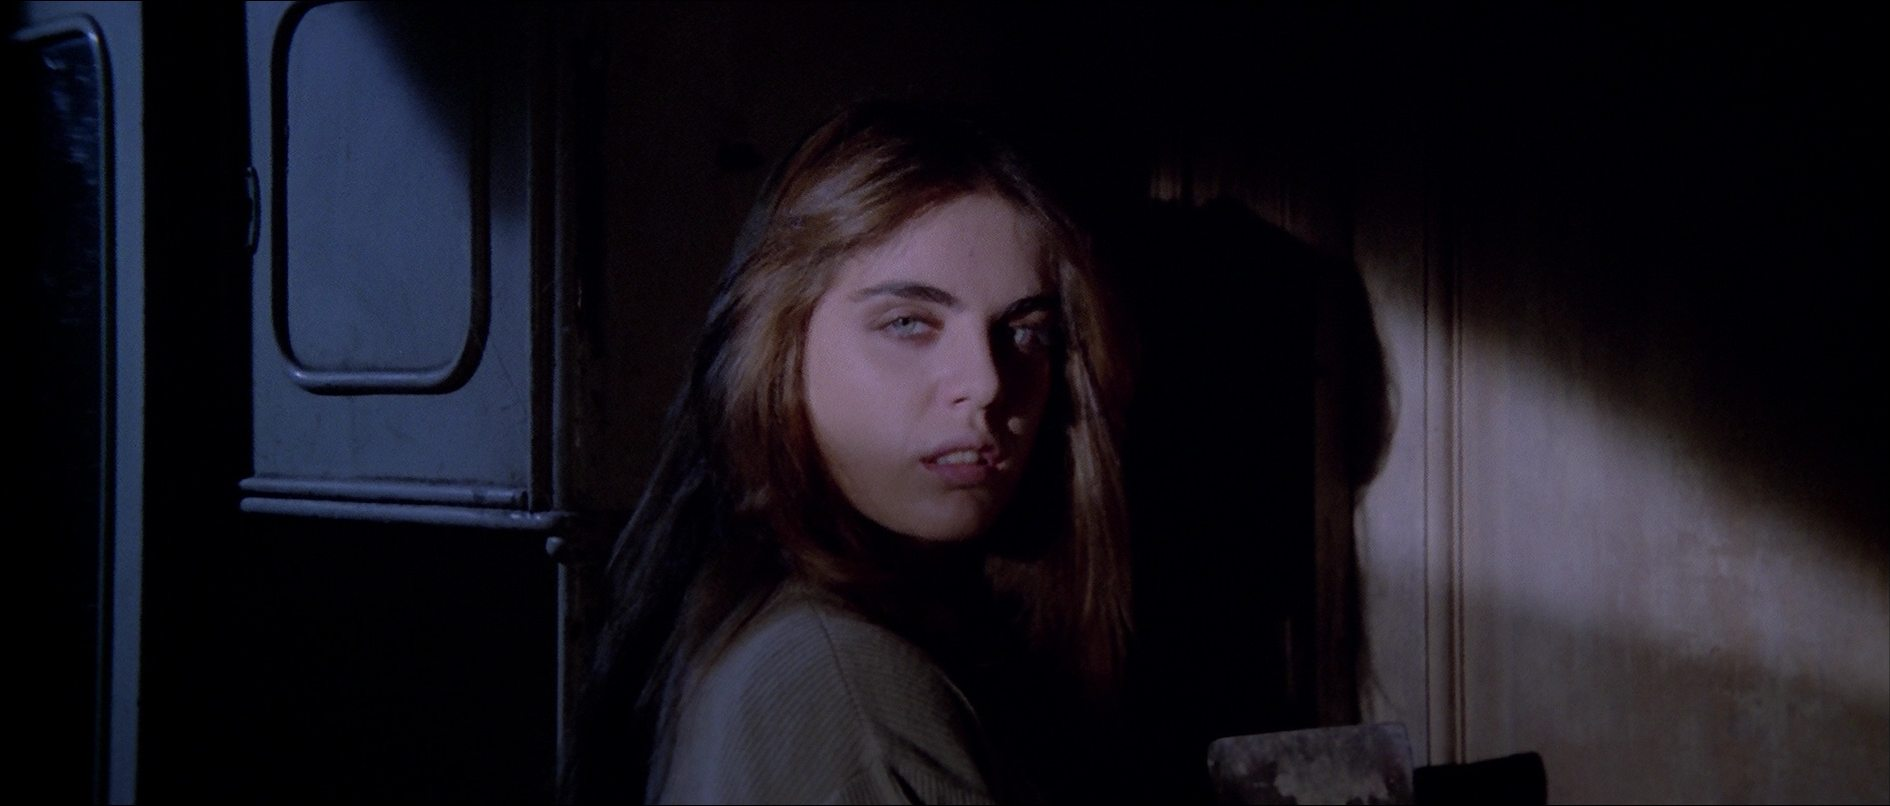 http://sinsofcinema.com/Images/House%20by%20the%20Cemetery/House%20by%20the%20Cemetery%20Blu-Ray.jpg